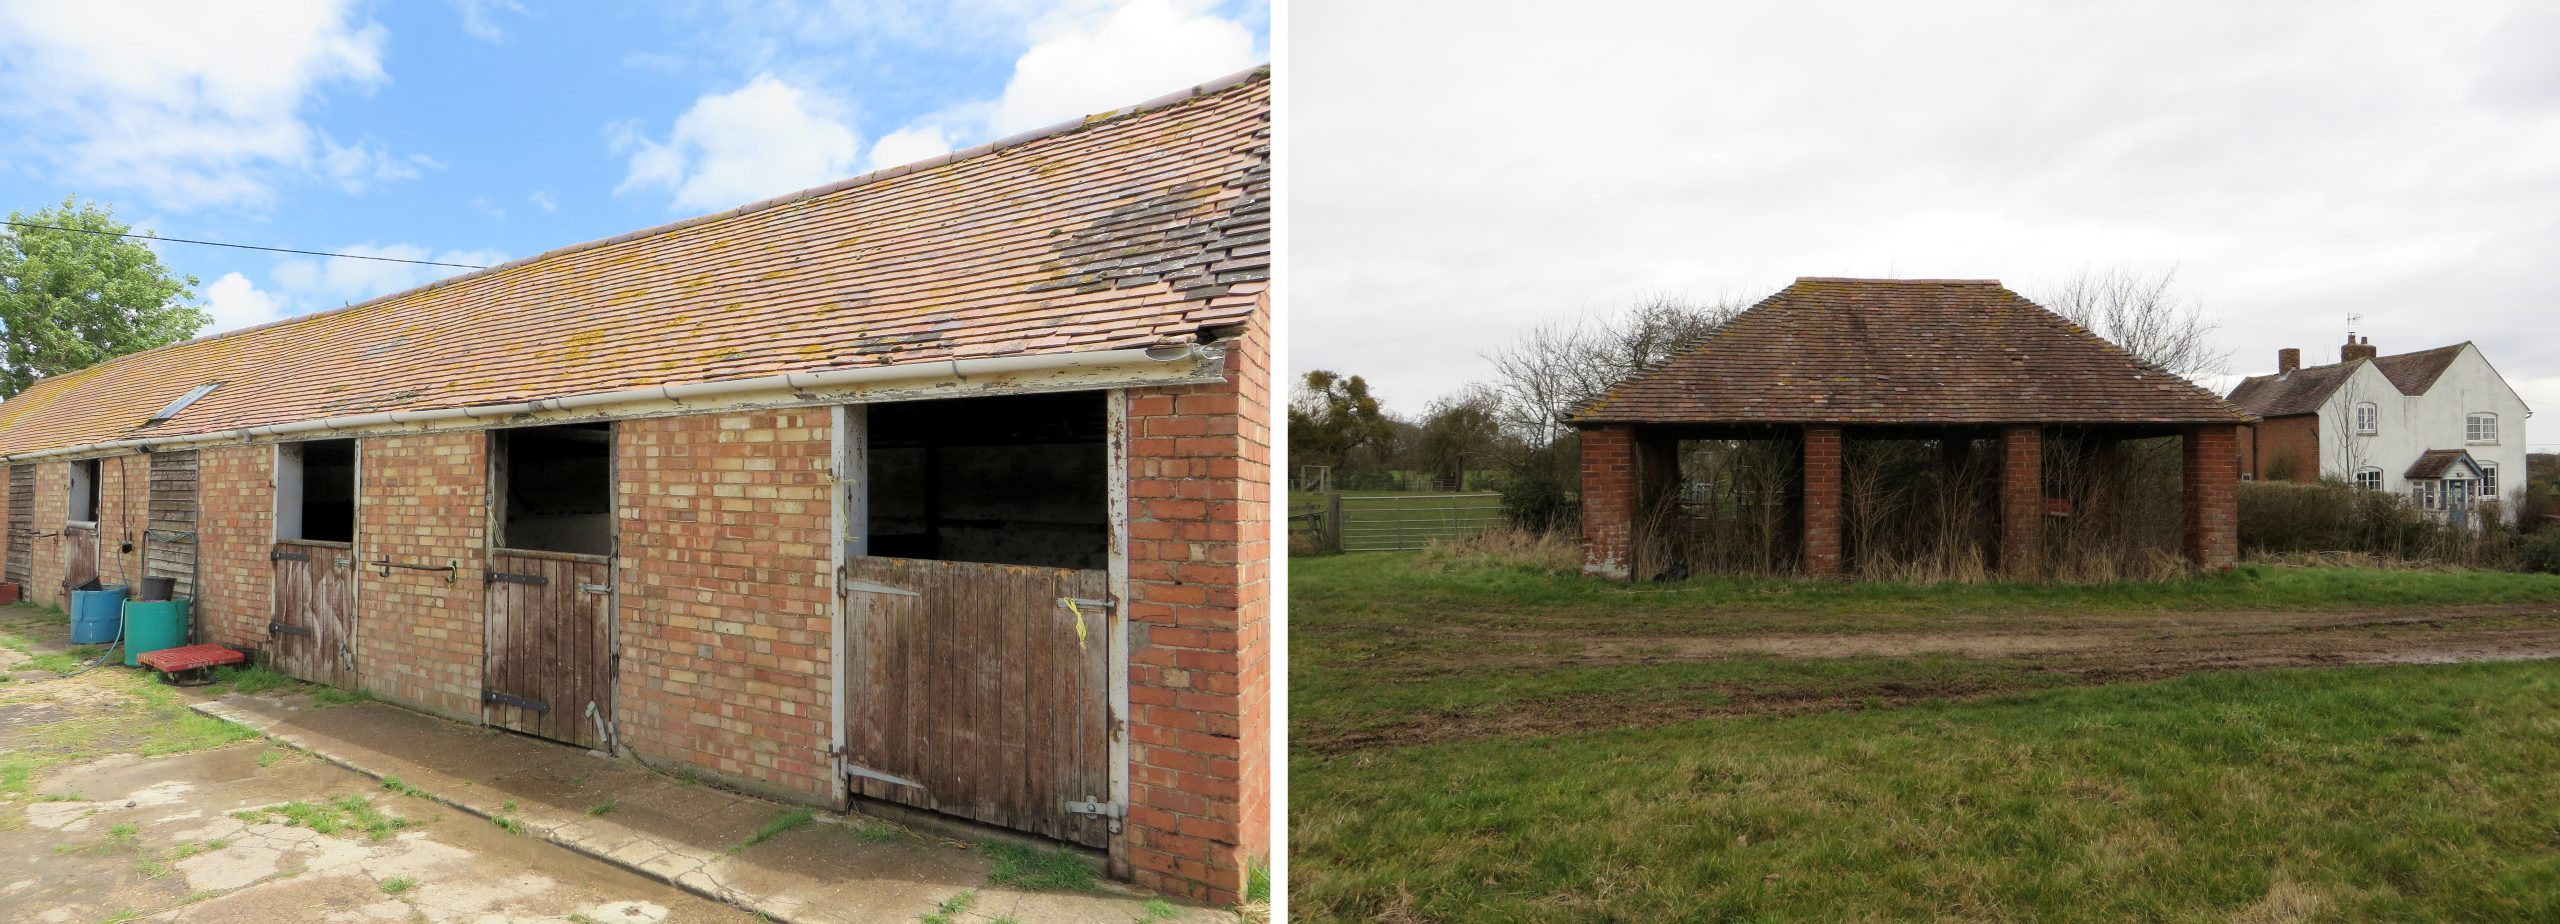 Brick stables and waggon house